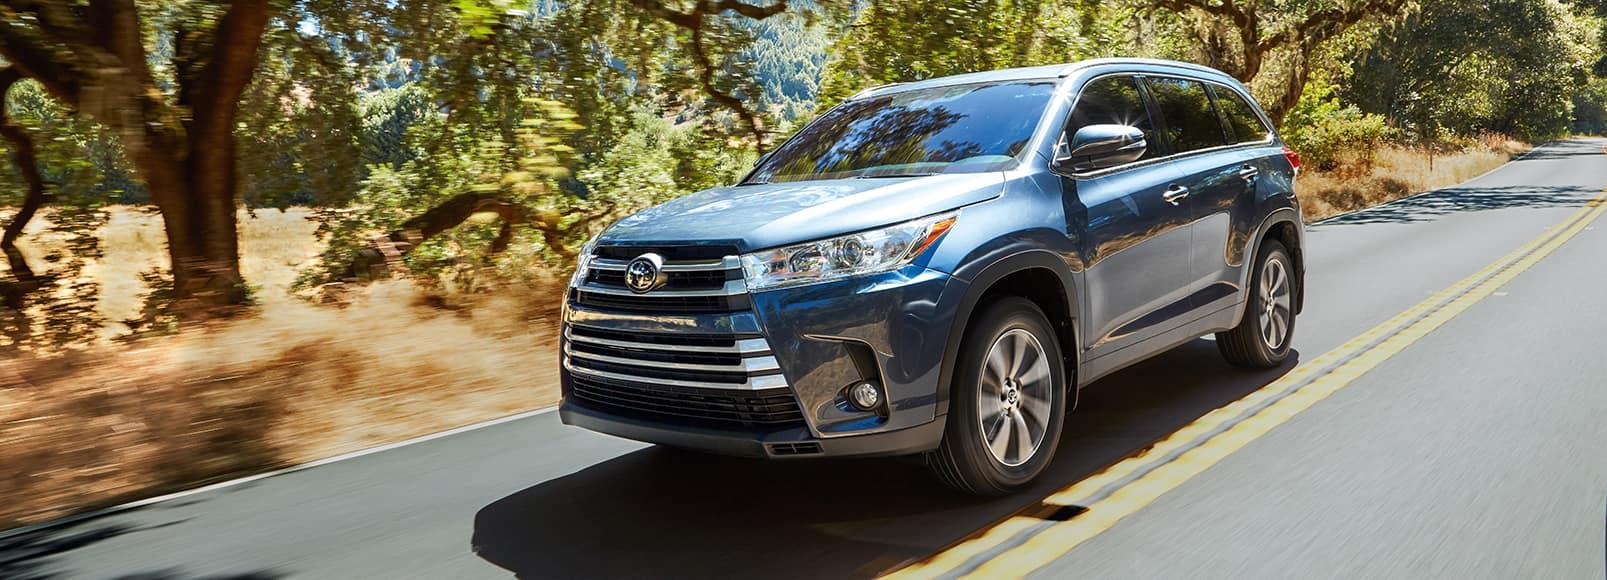 How to clean your car's interior at Boch Toyota in North Attleborough | gray toyota highlander running on road